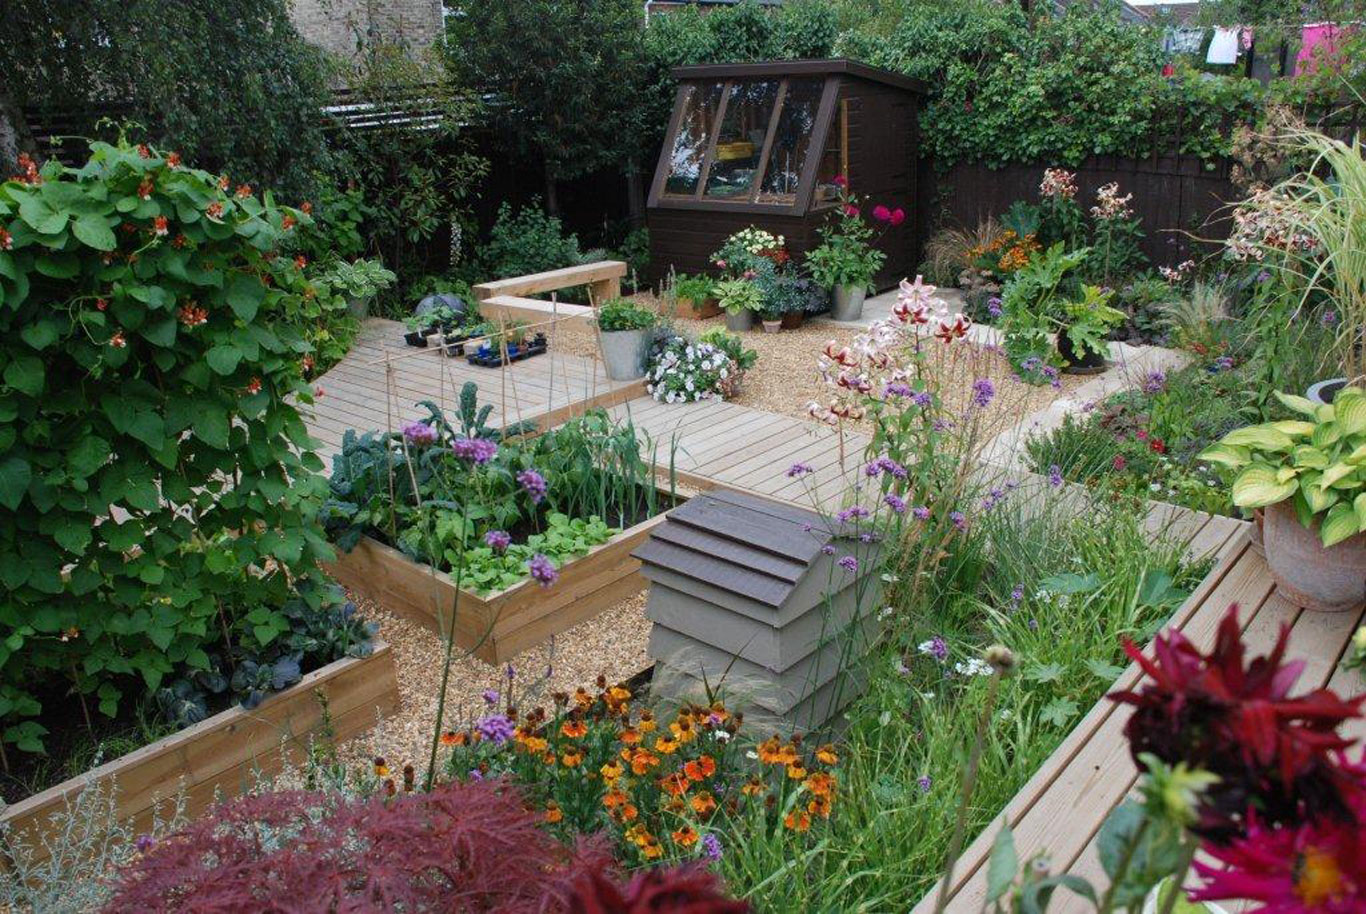 Garden landscapers in essex and london west essex landscapes for Landscape garden designers